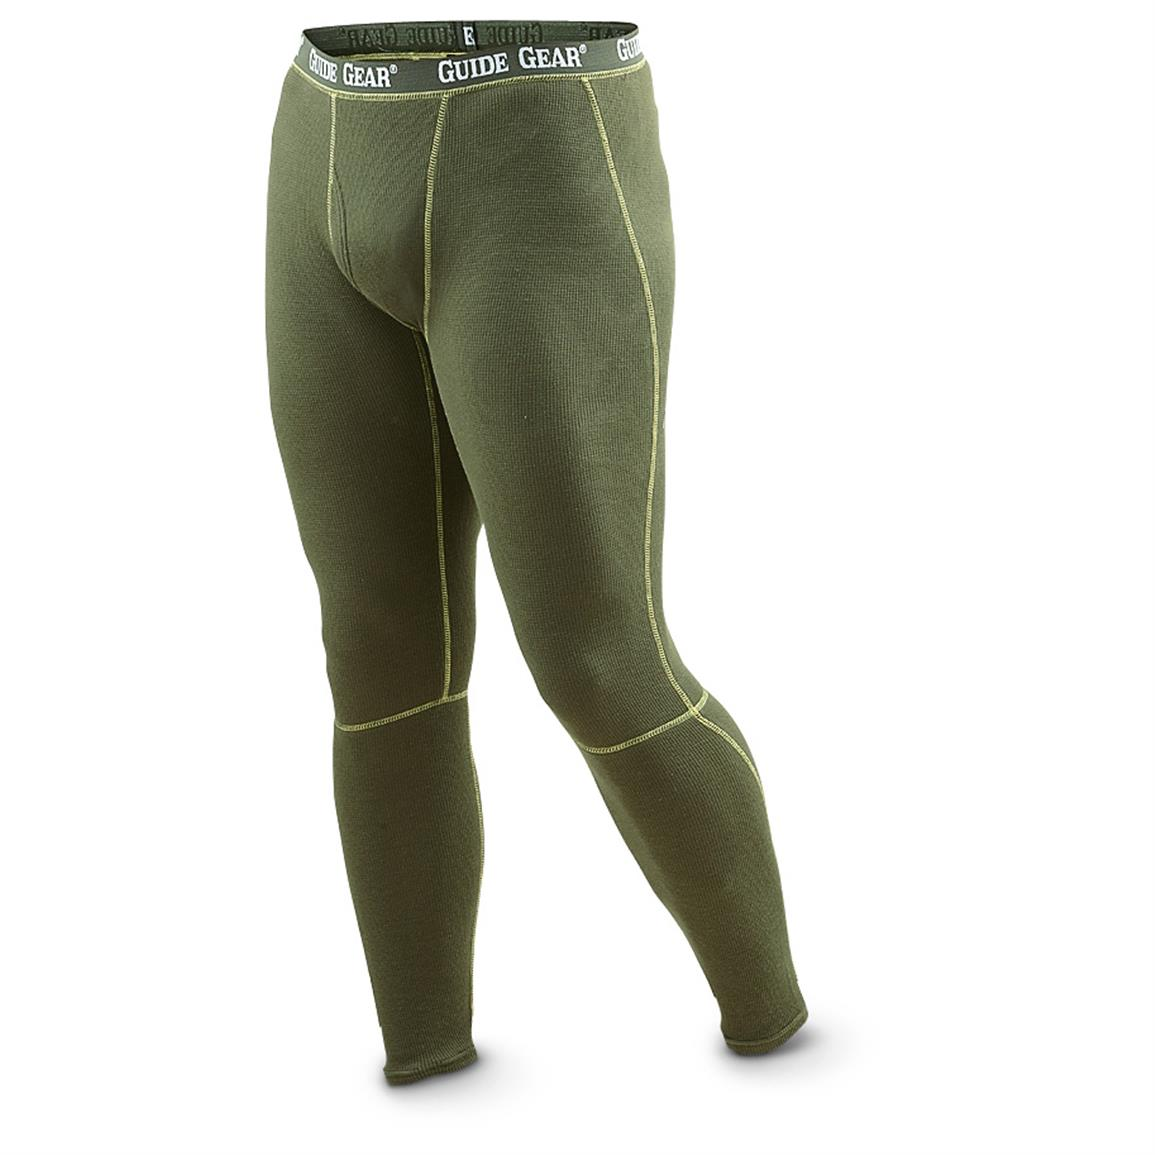 2-Pk. of Guide Gear® Thermaweave Stretch Base Layer Pants, Olive